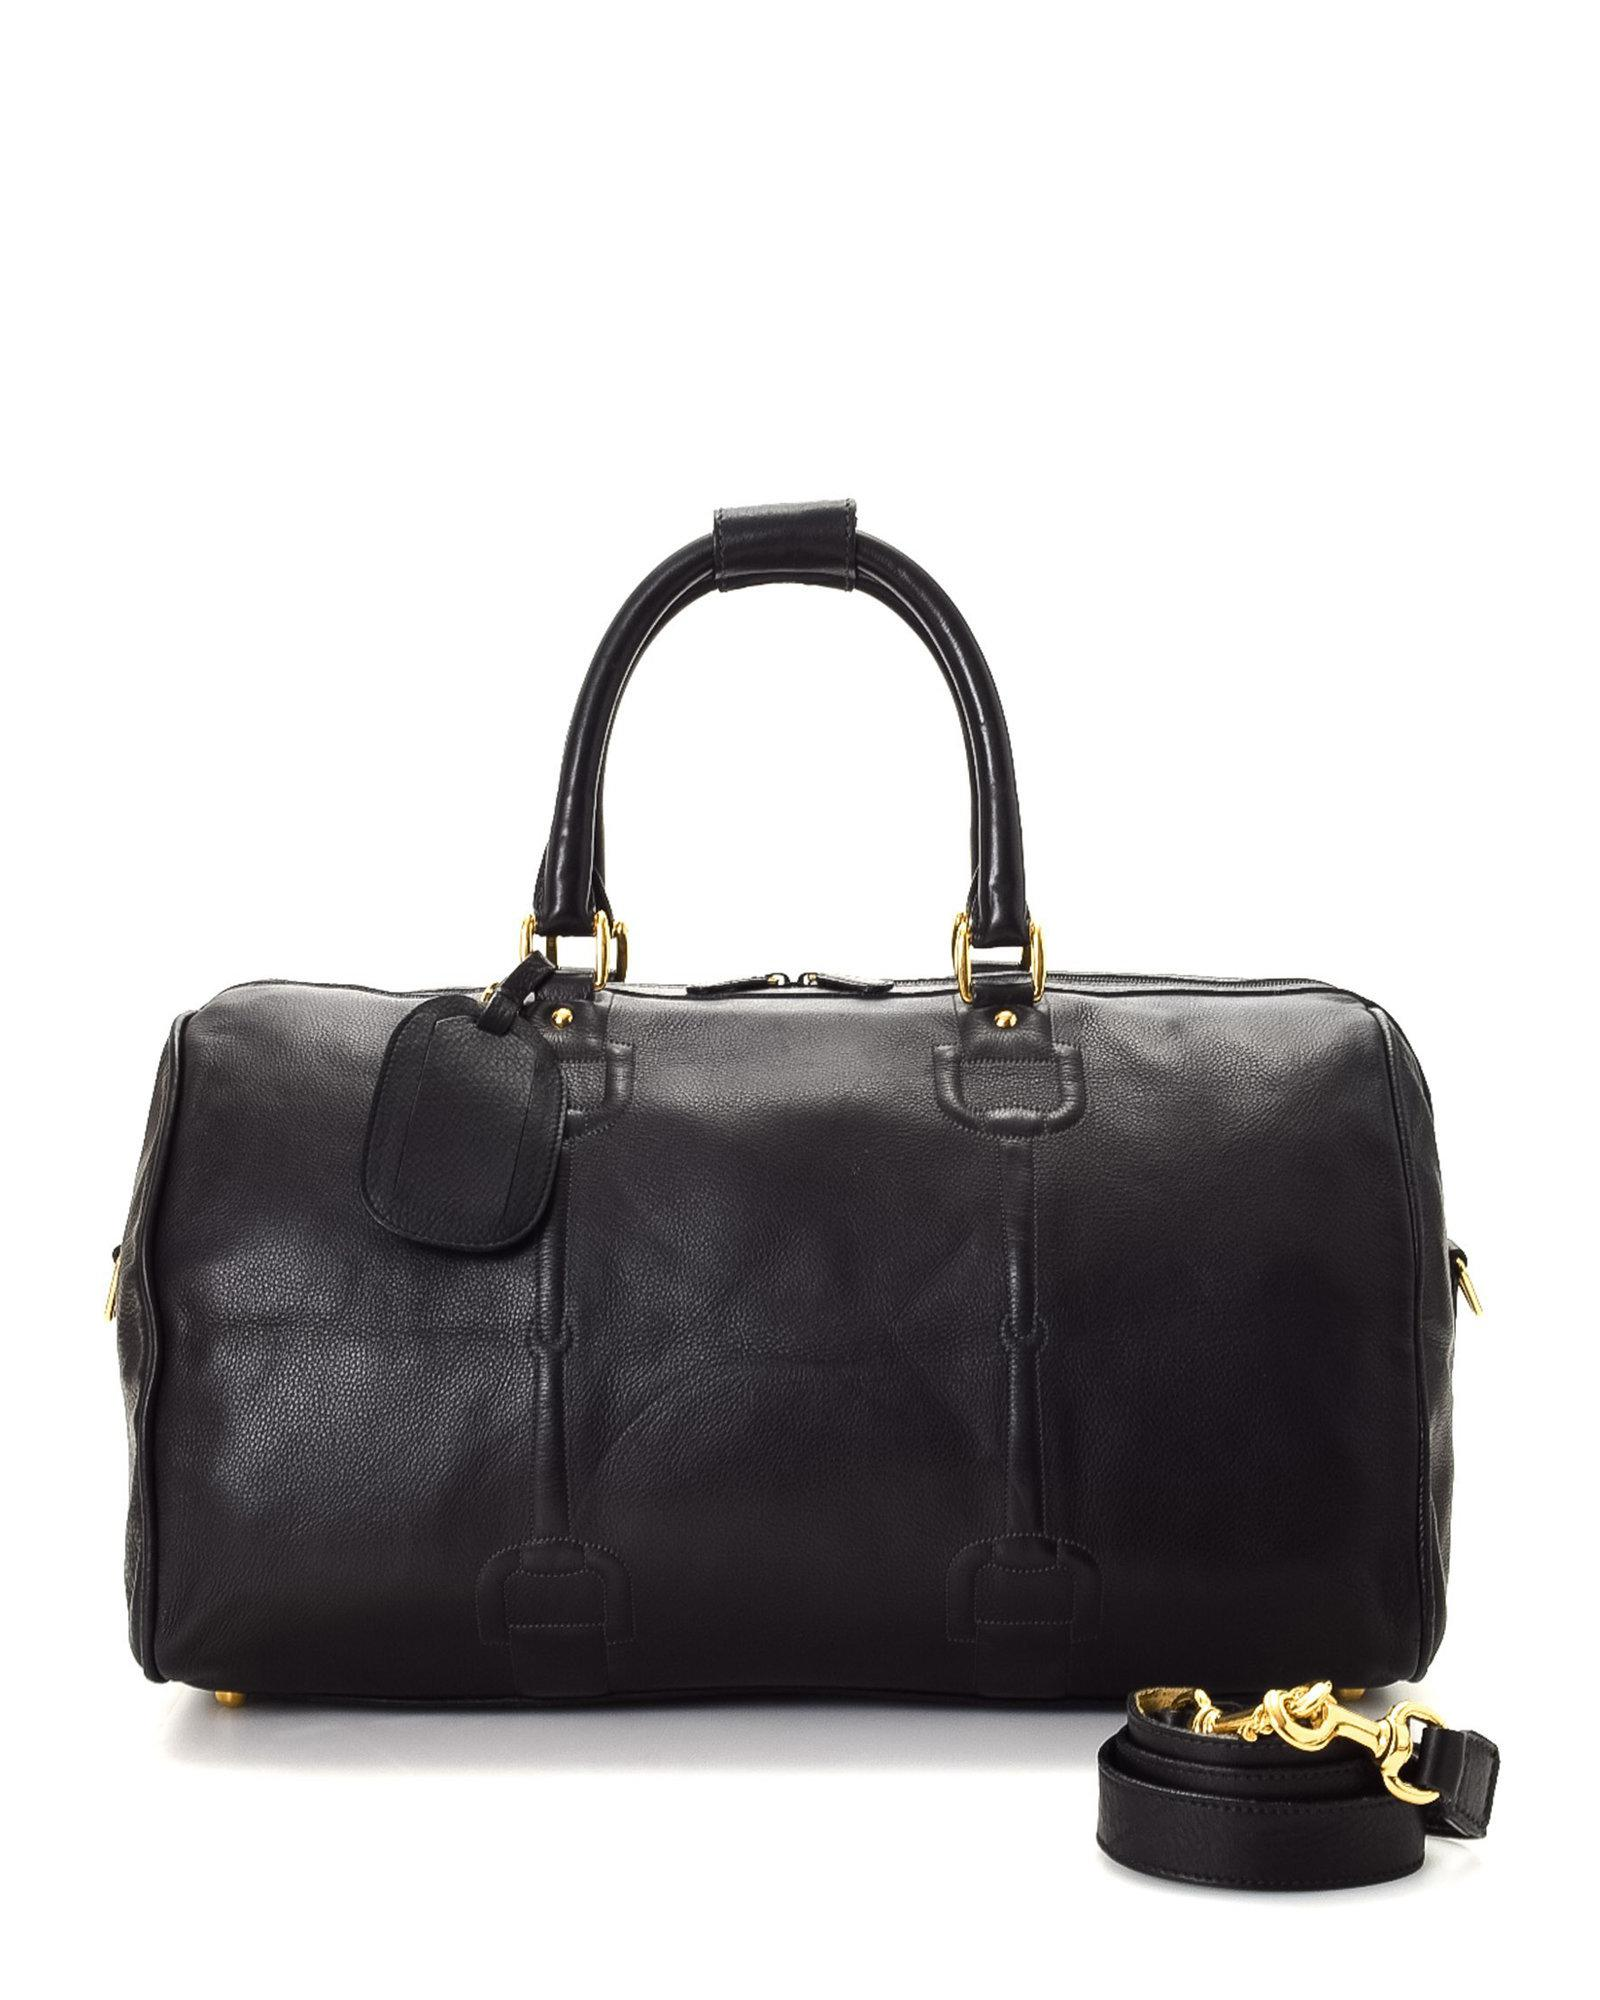 37d6f2a7805bff Gucci Horsebit Leather Travel Bag - Vintage in Black - Lyst